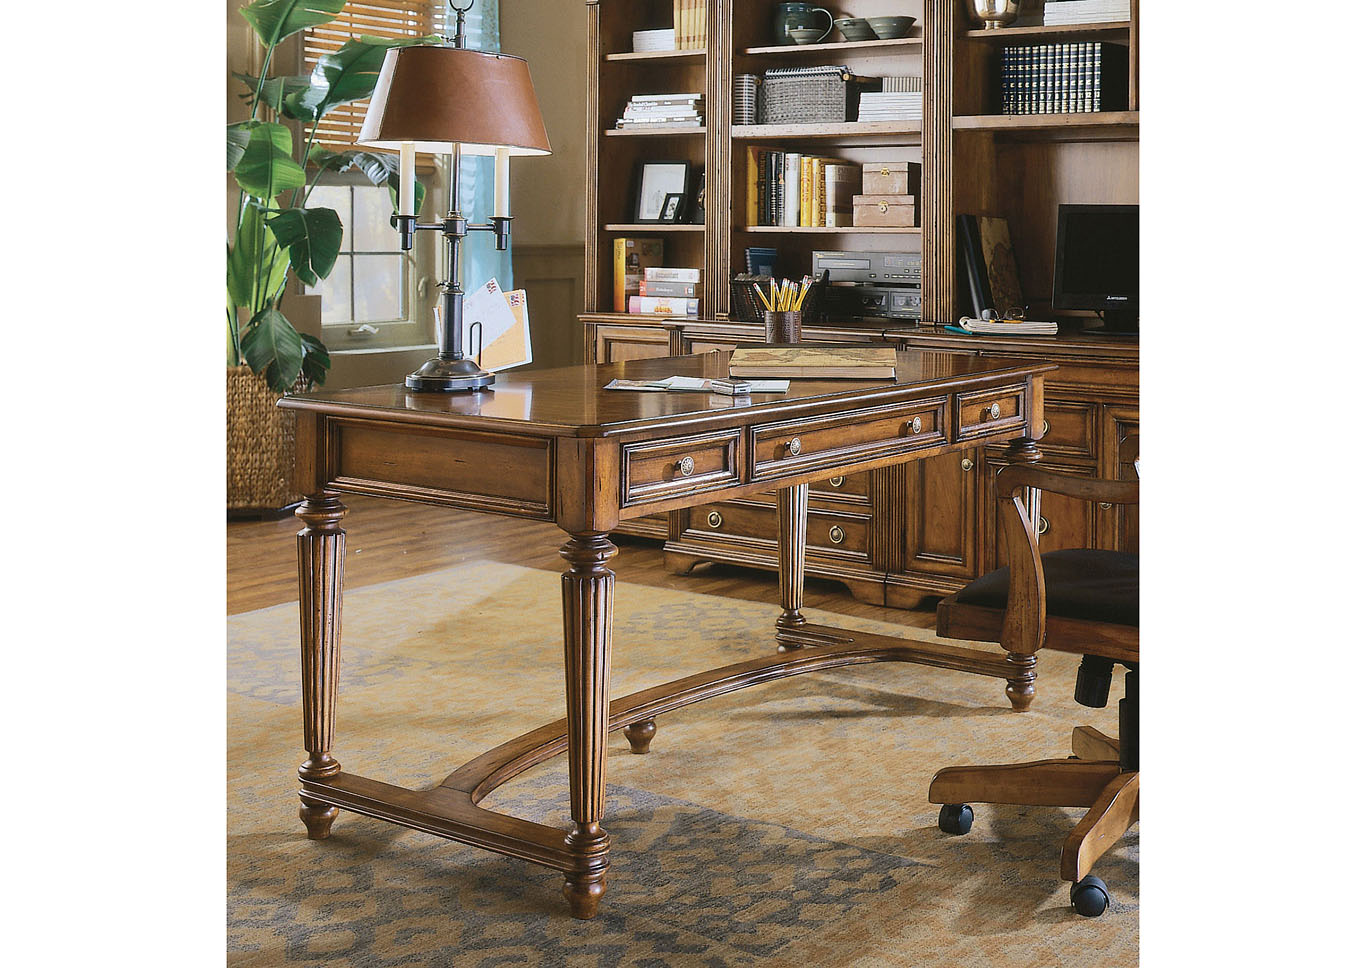 Incredible Plaza Furniture Brookhaven Leg Desk Andrewgaddart Wooden Chair Designs For Living Room Andrewgaddartcom